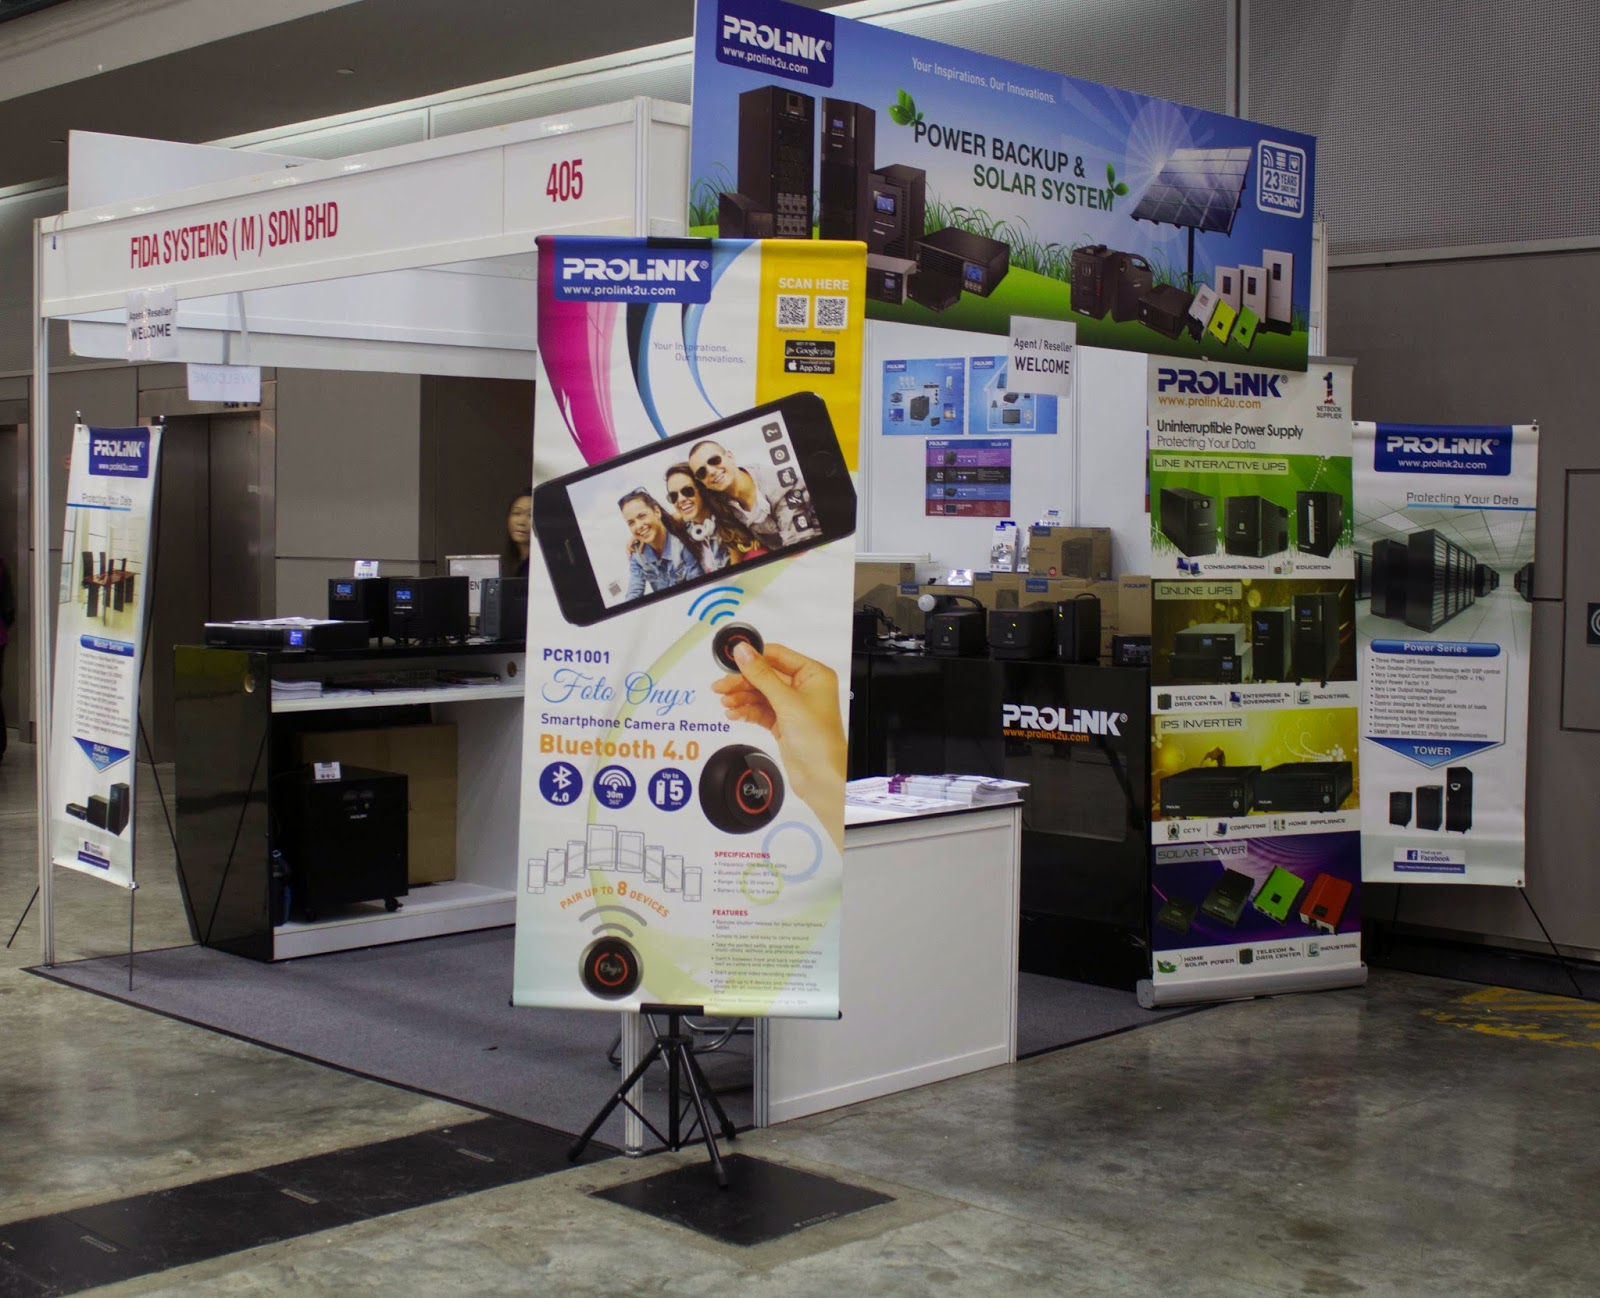 Coverage of PIKOM PC Fair 2014 @ Kuala Lumpur Convention Center 374